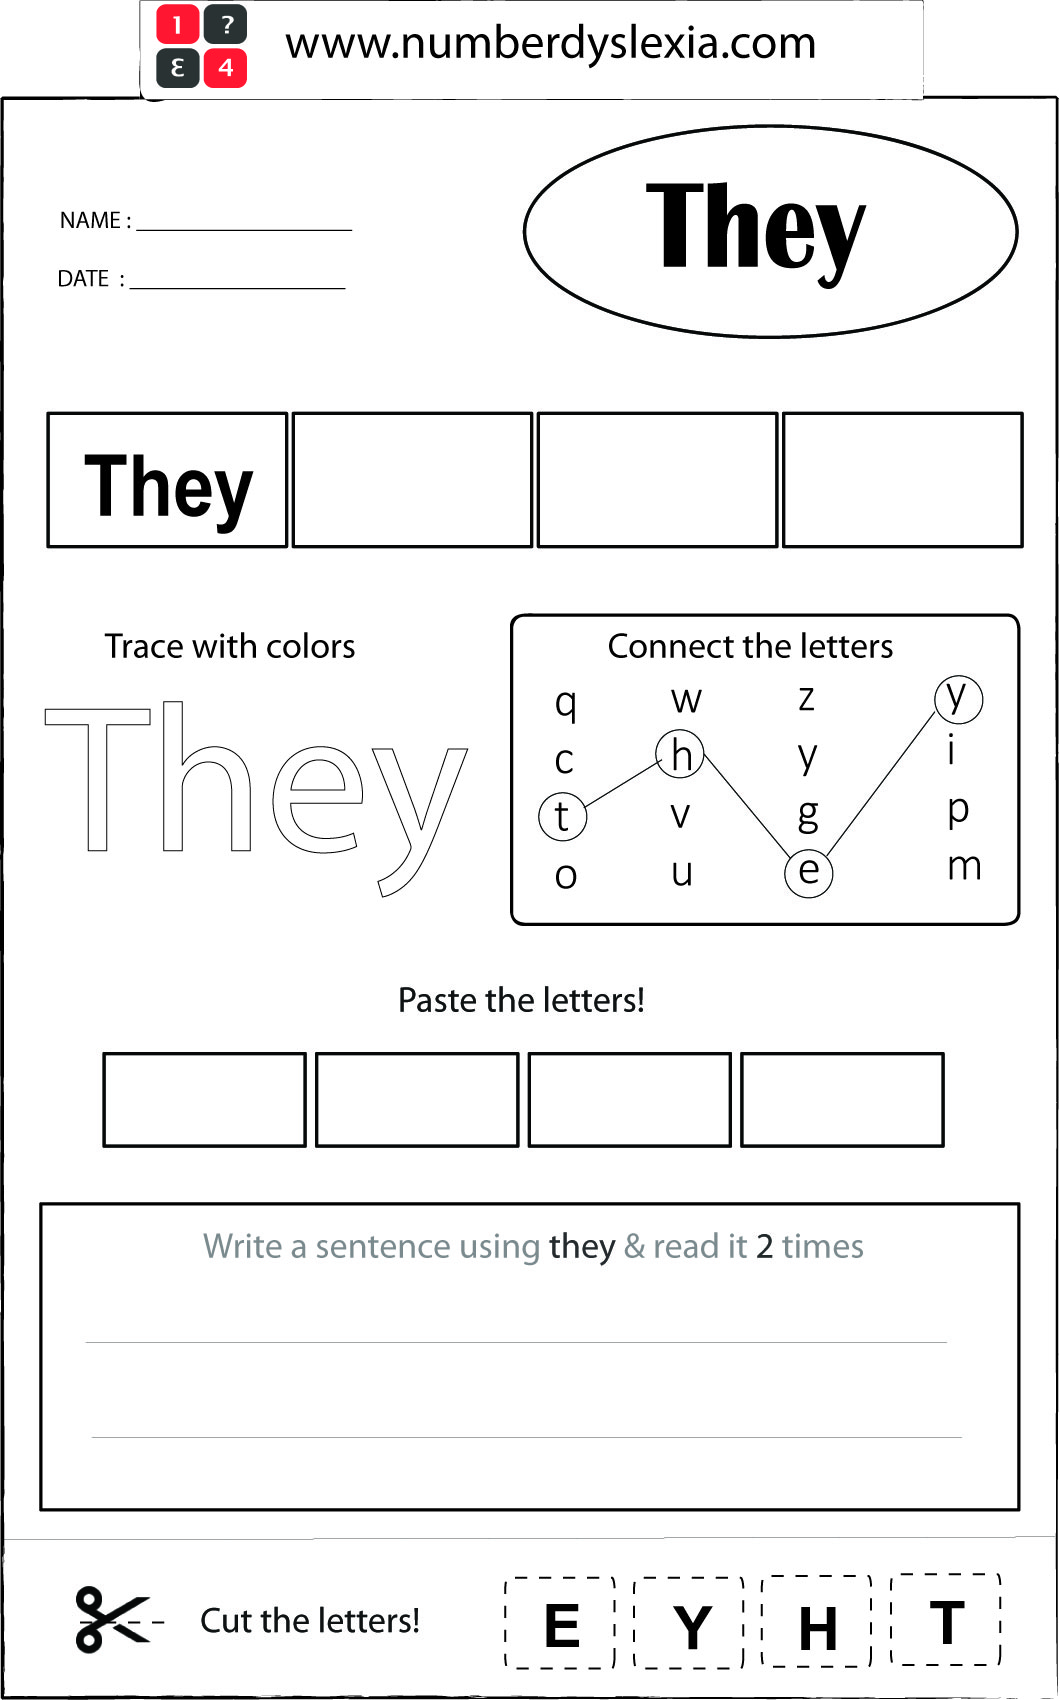 hight resolution of Free Printable Orton Gillingham Worksheet with Template PDF - Number  Dyslexia